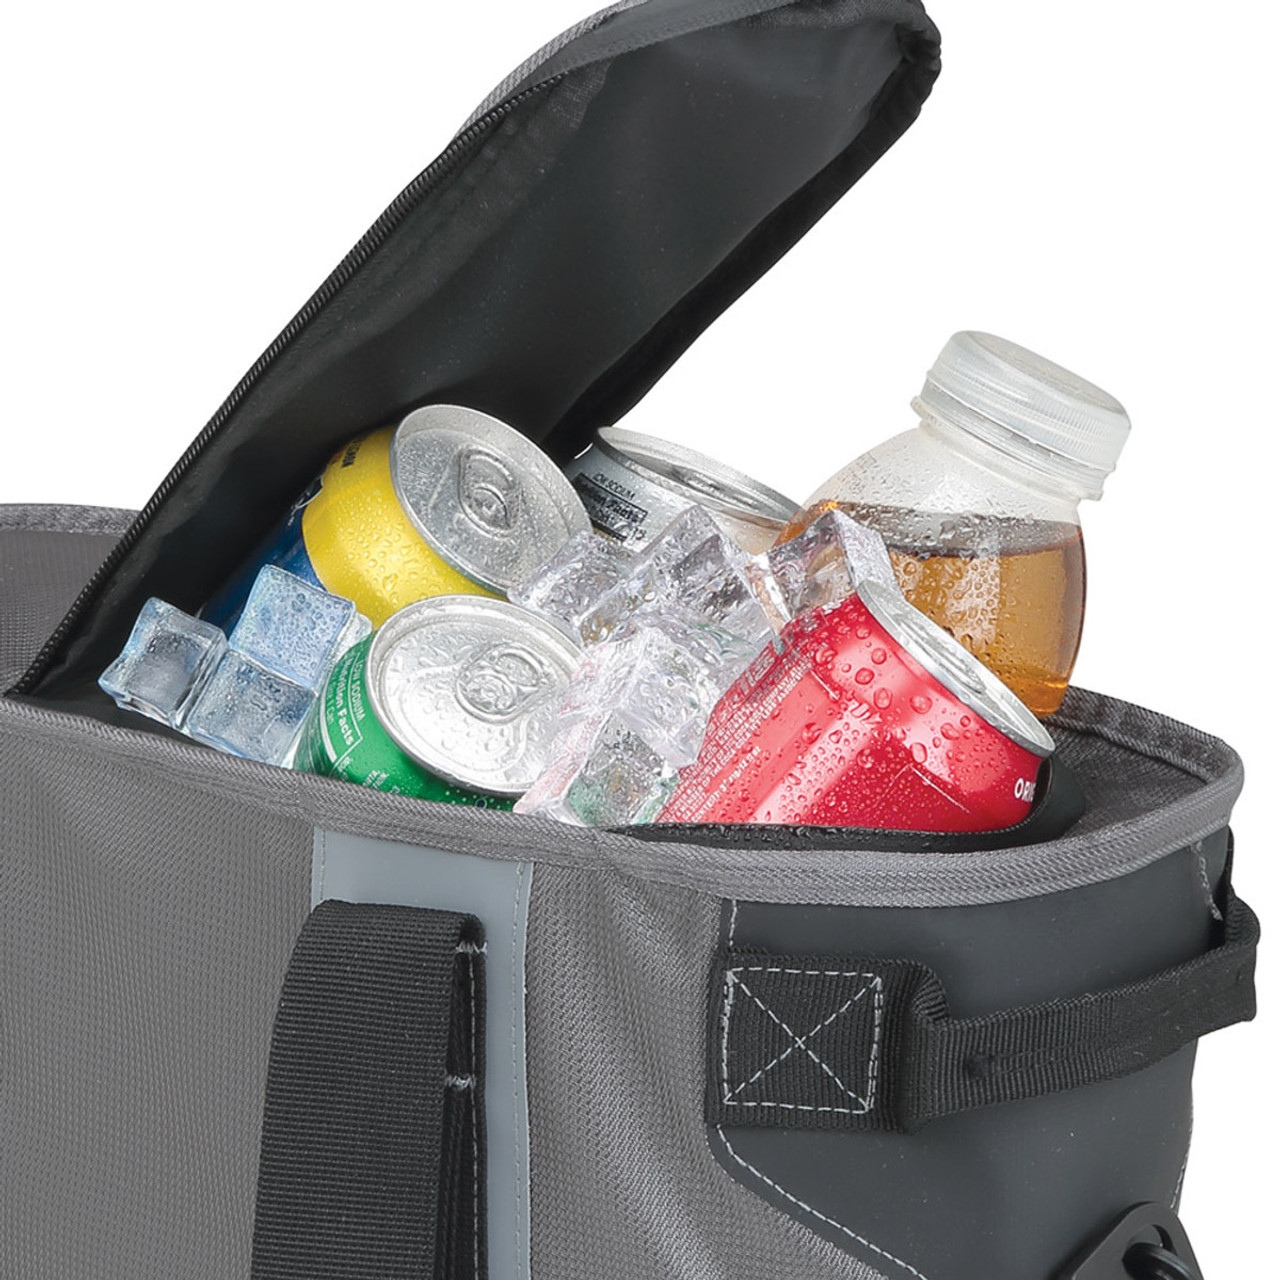 GMC Gray and Black 24 Can Cooler Bag (inside closeup)